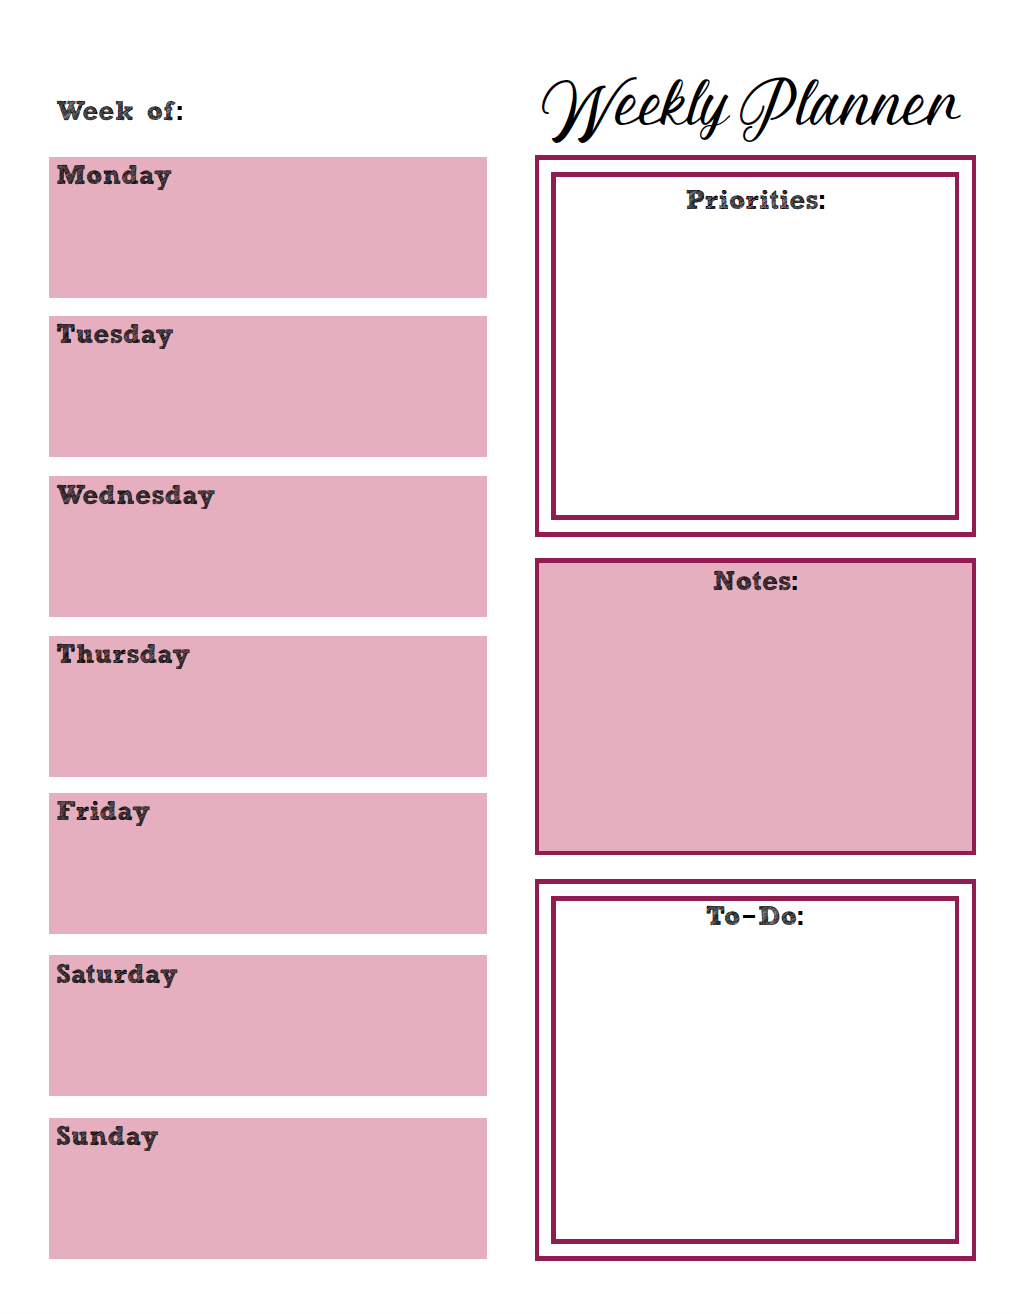 Free Printable Weekly Planners: Monday Start. 4 Designs. Monday to Sunday free printable weekly planners. #planner #planners #freeplanner #printable #freeprintable